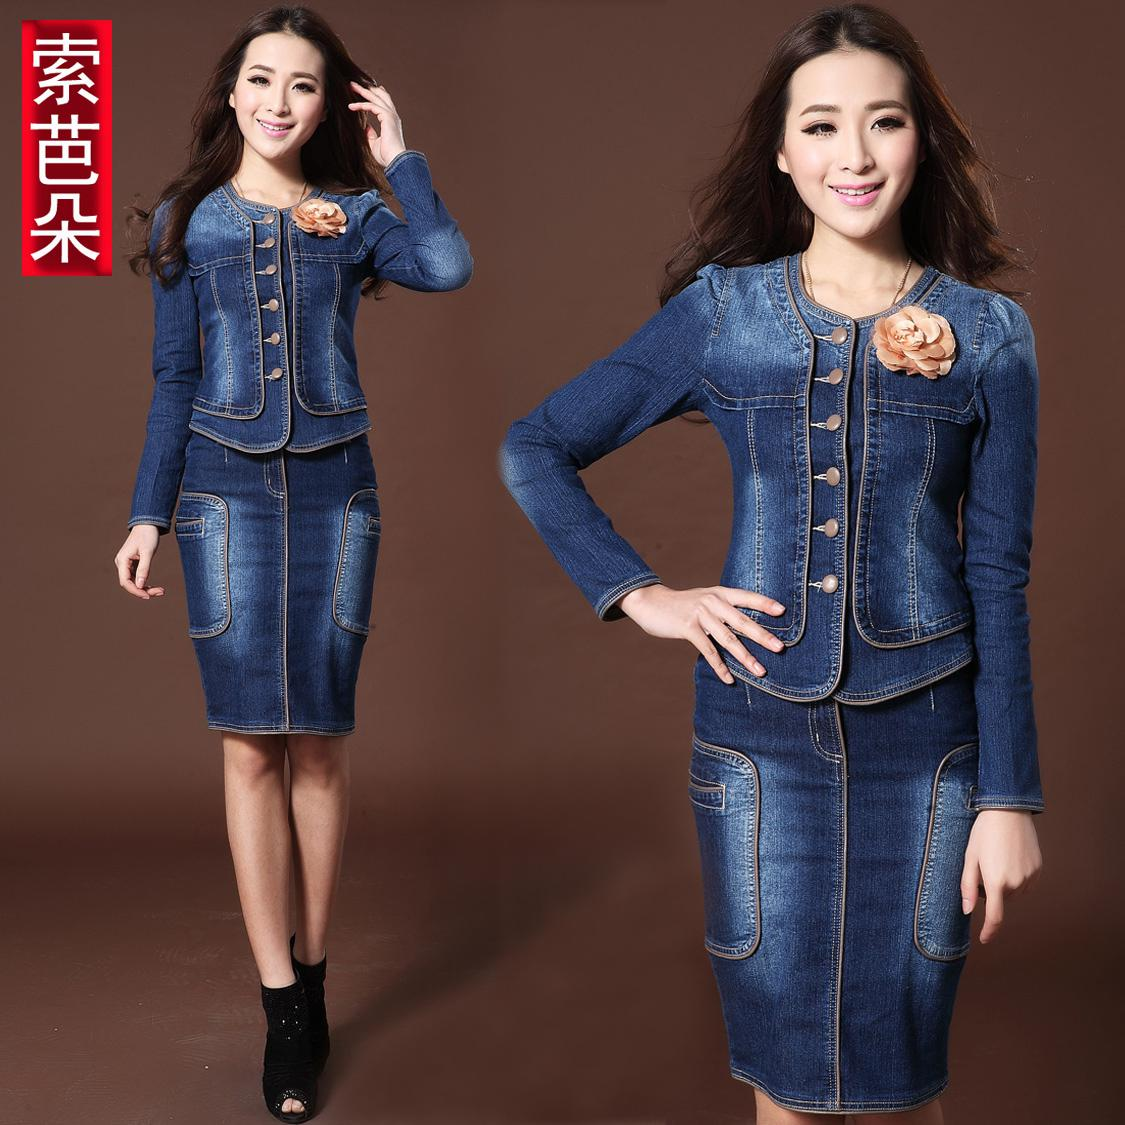 2017 Leisure S Set Women's Denim And Jean Dresses,2013 Spring ...